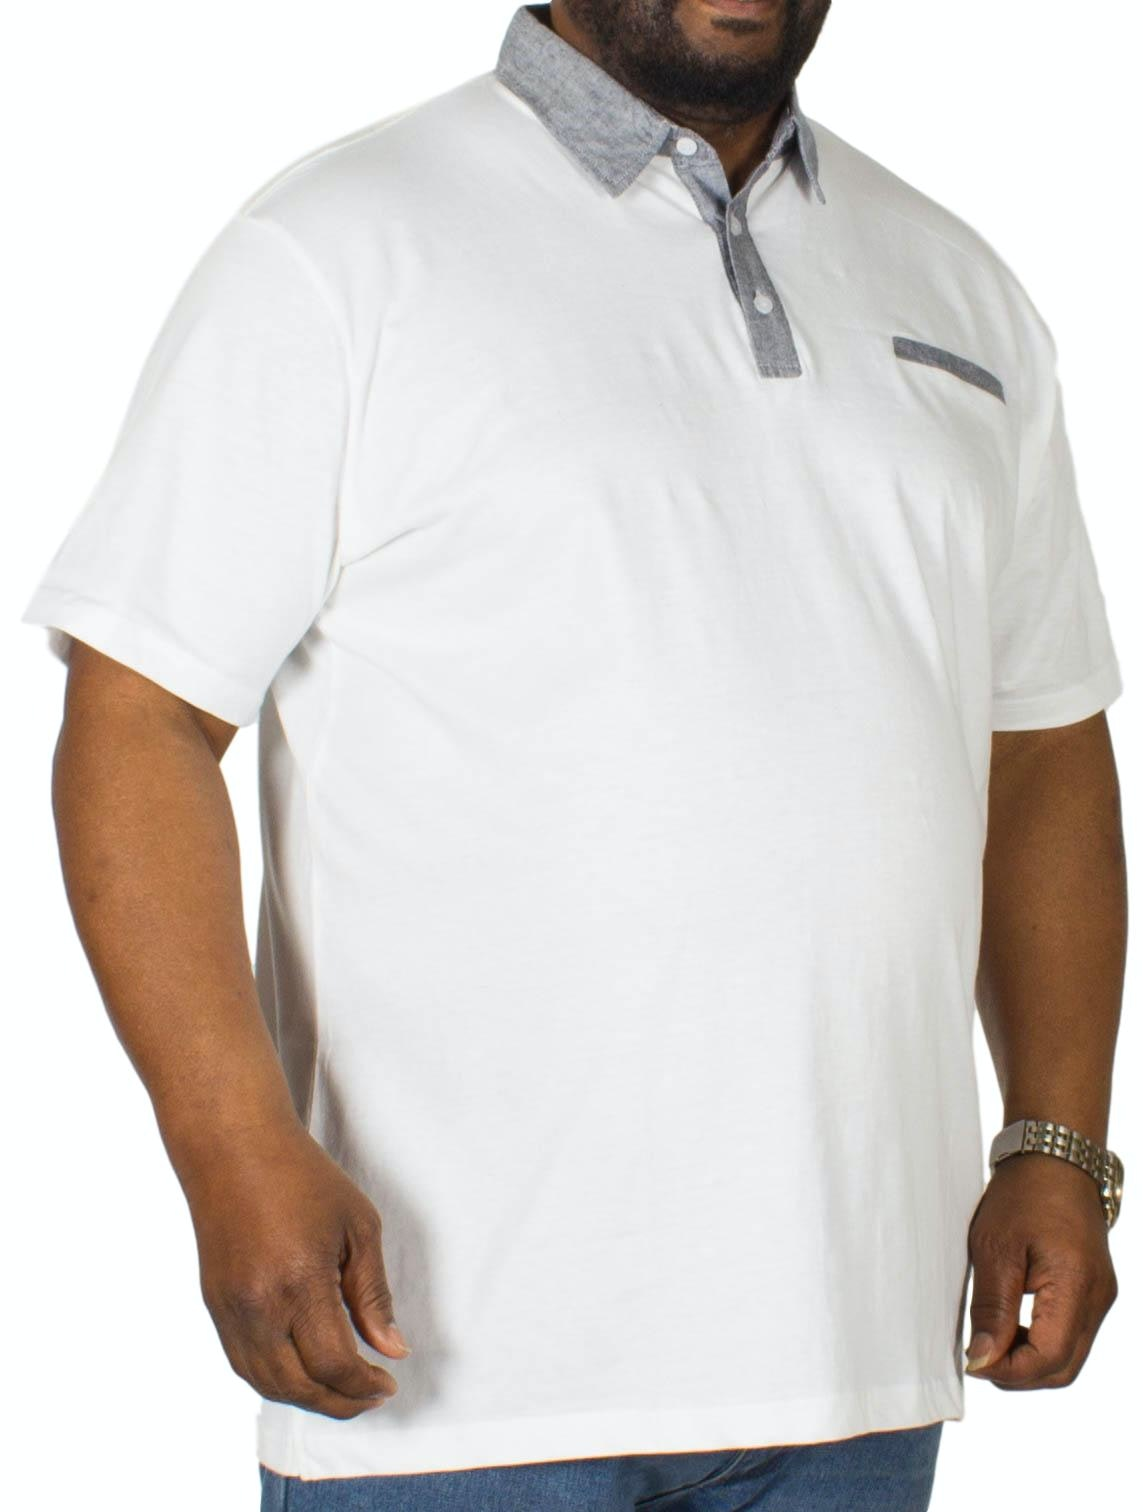 Bigdude Contrast Jersey Polo Shirt White Tall